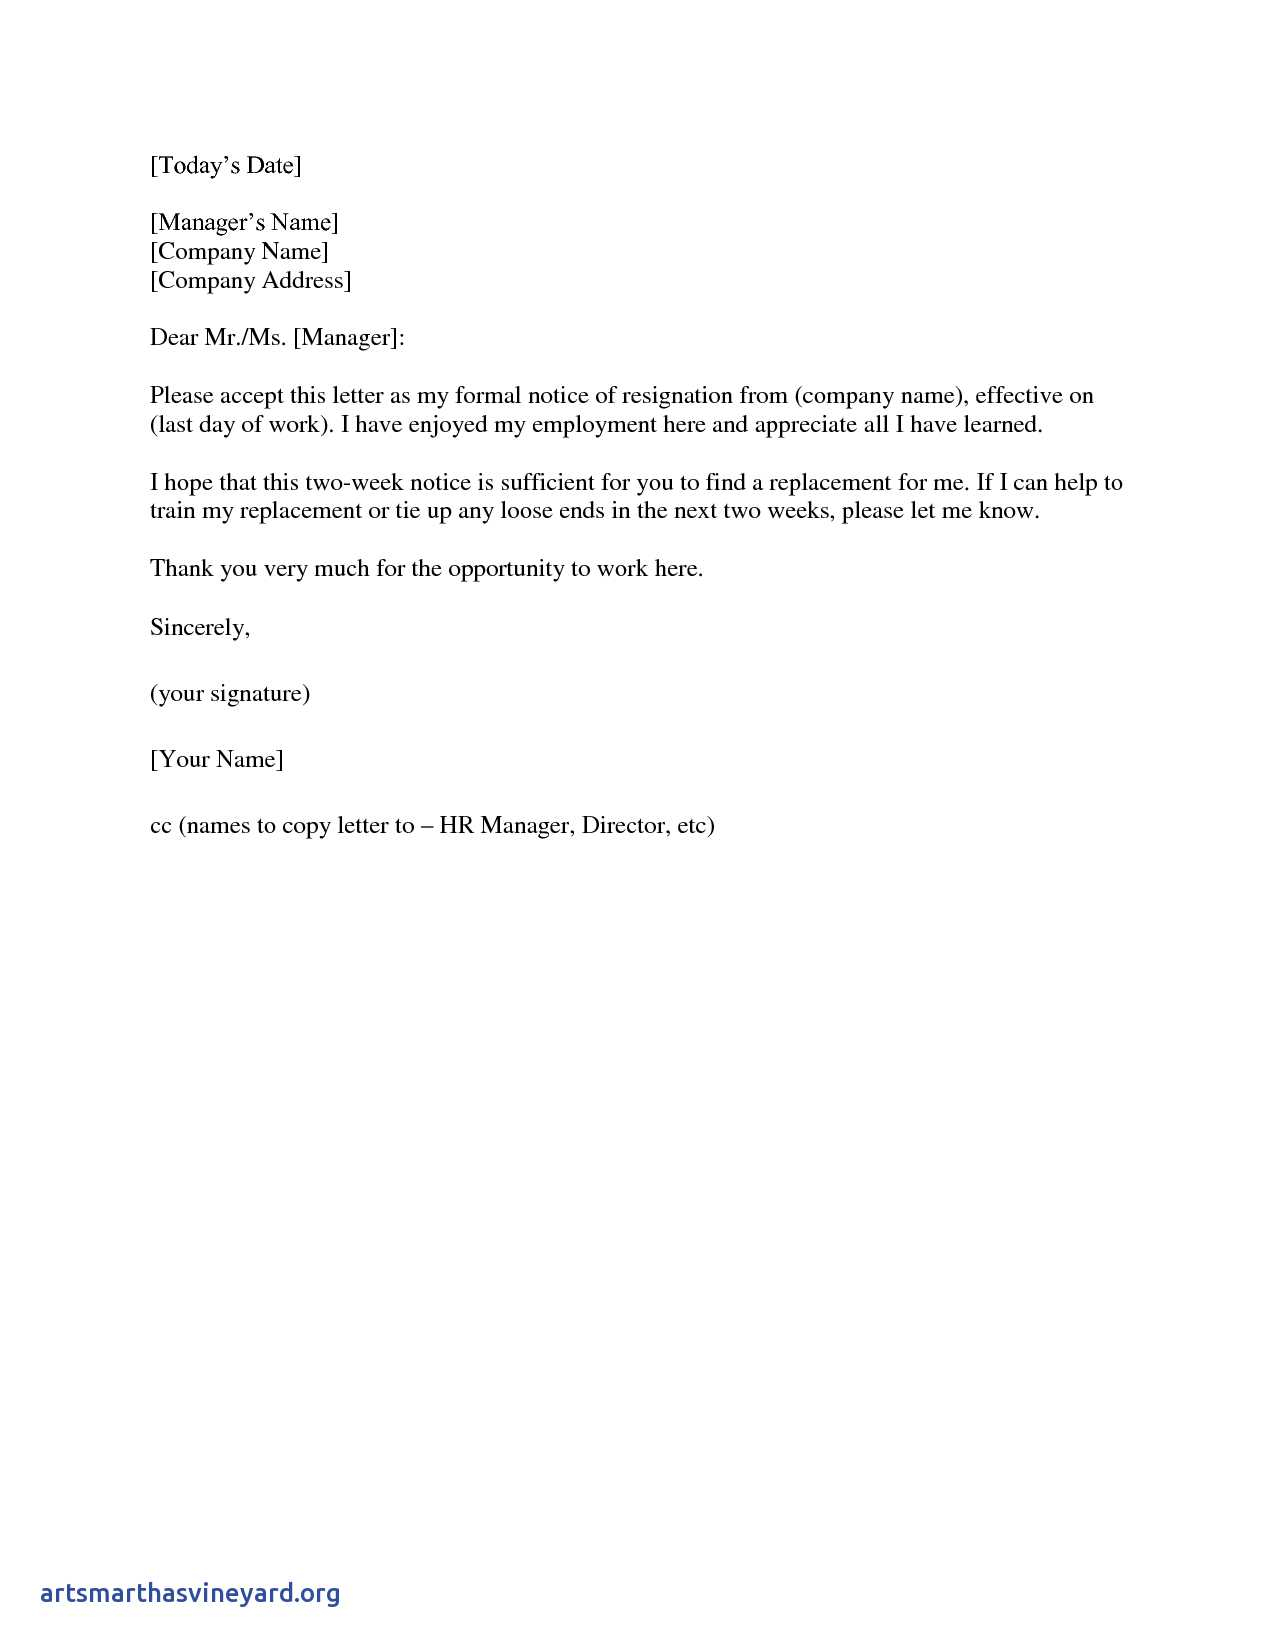 Official Letter Of Resignation Template - 2 Weeks Notice Letter Resignation Letter 2 Week Notice From Two Week